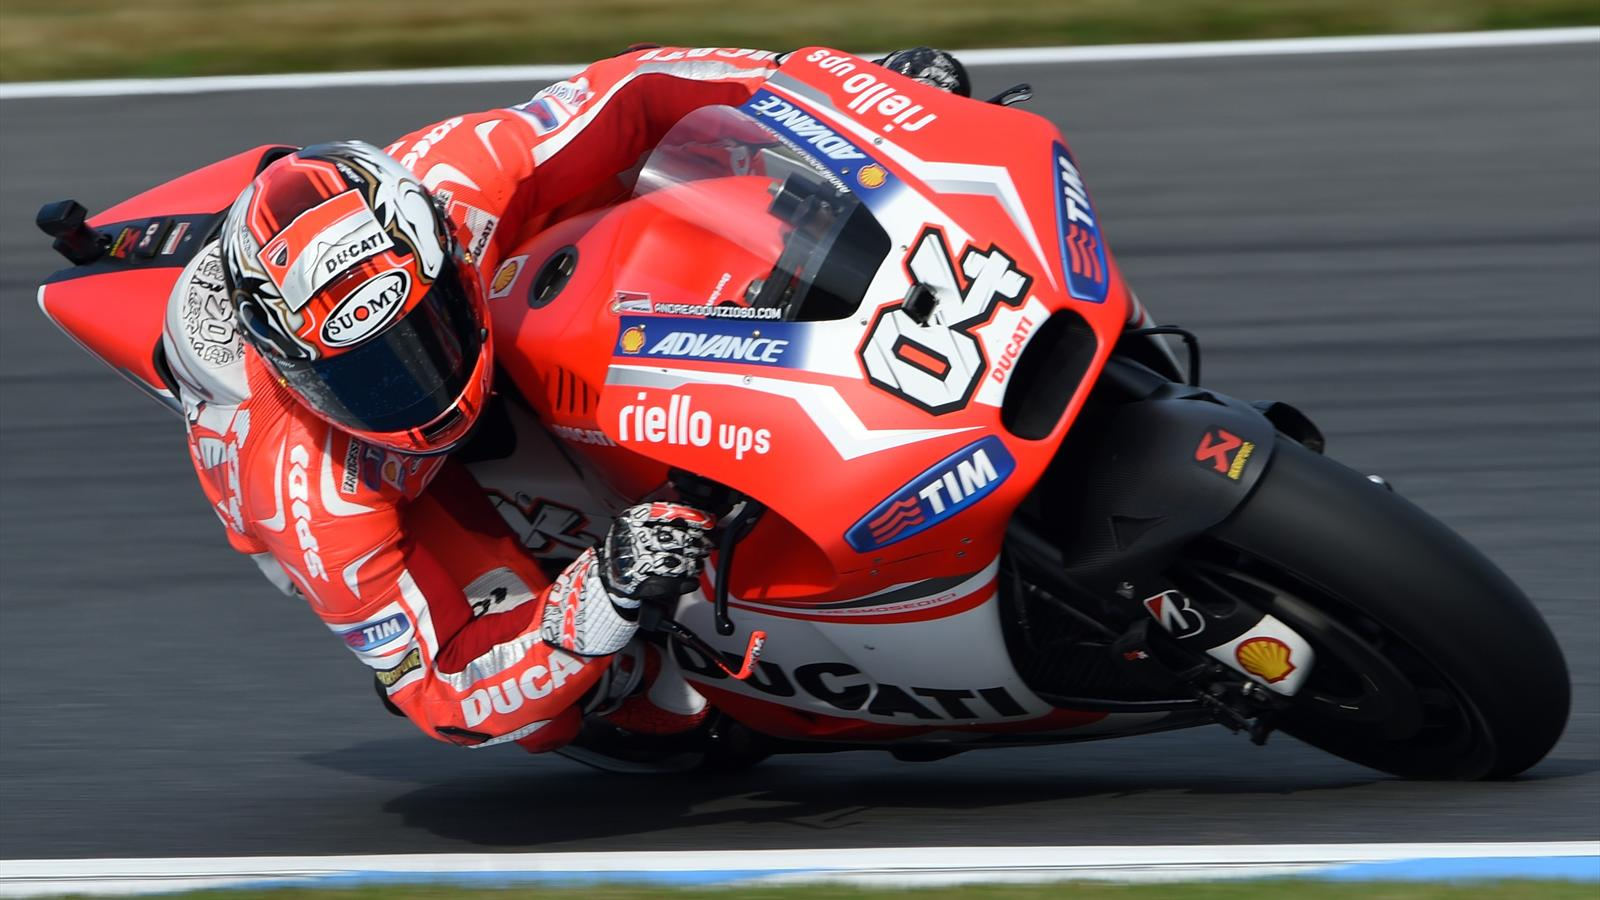 Grand Prix MotoGP 2014 du Japon en direct live streaming